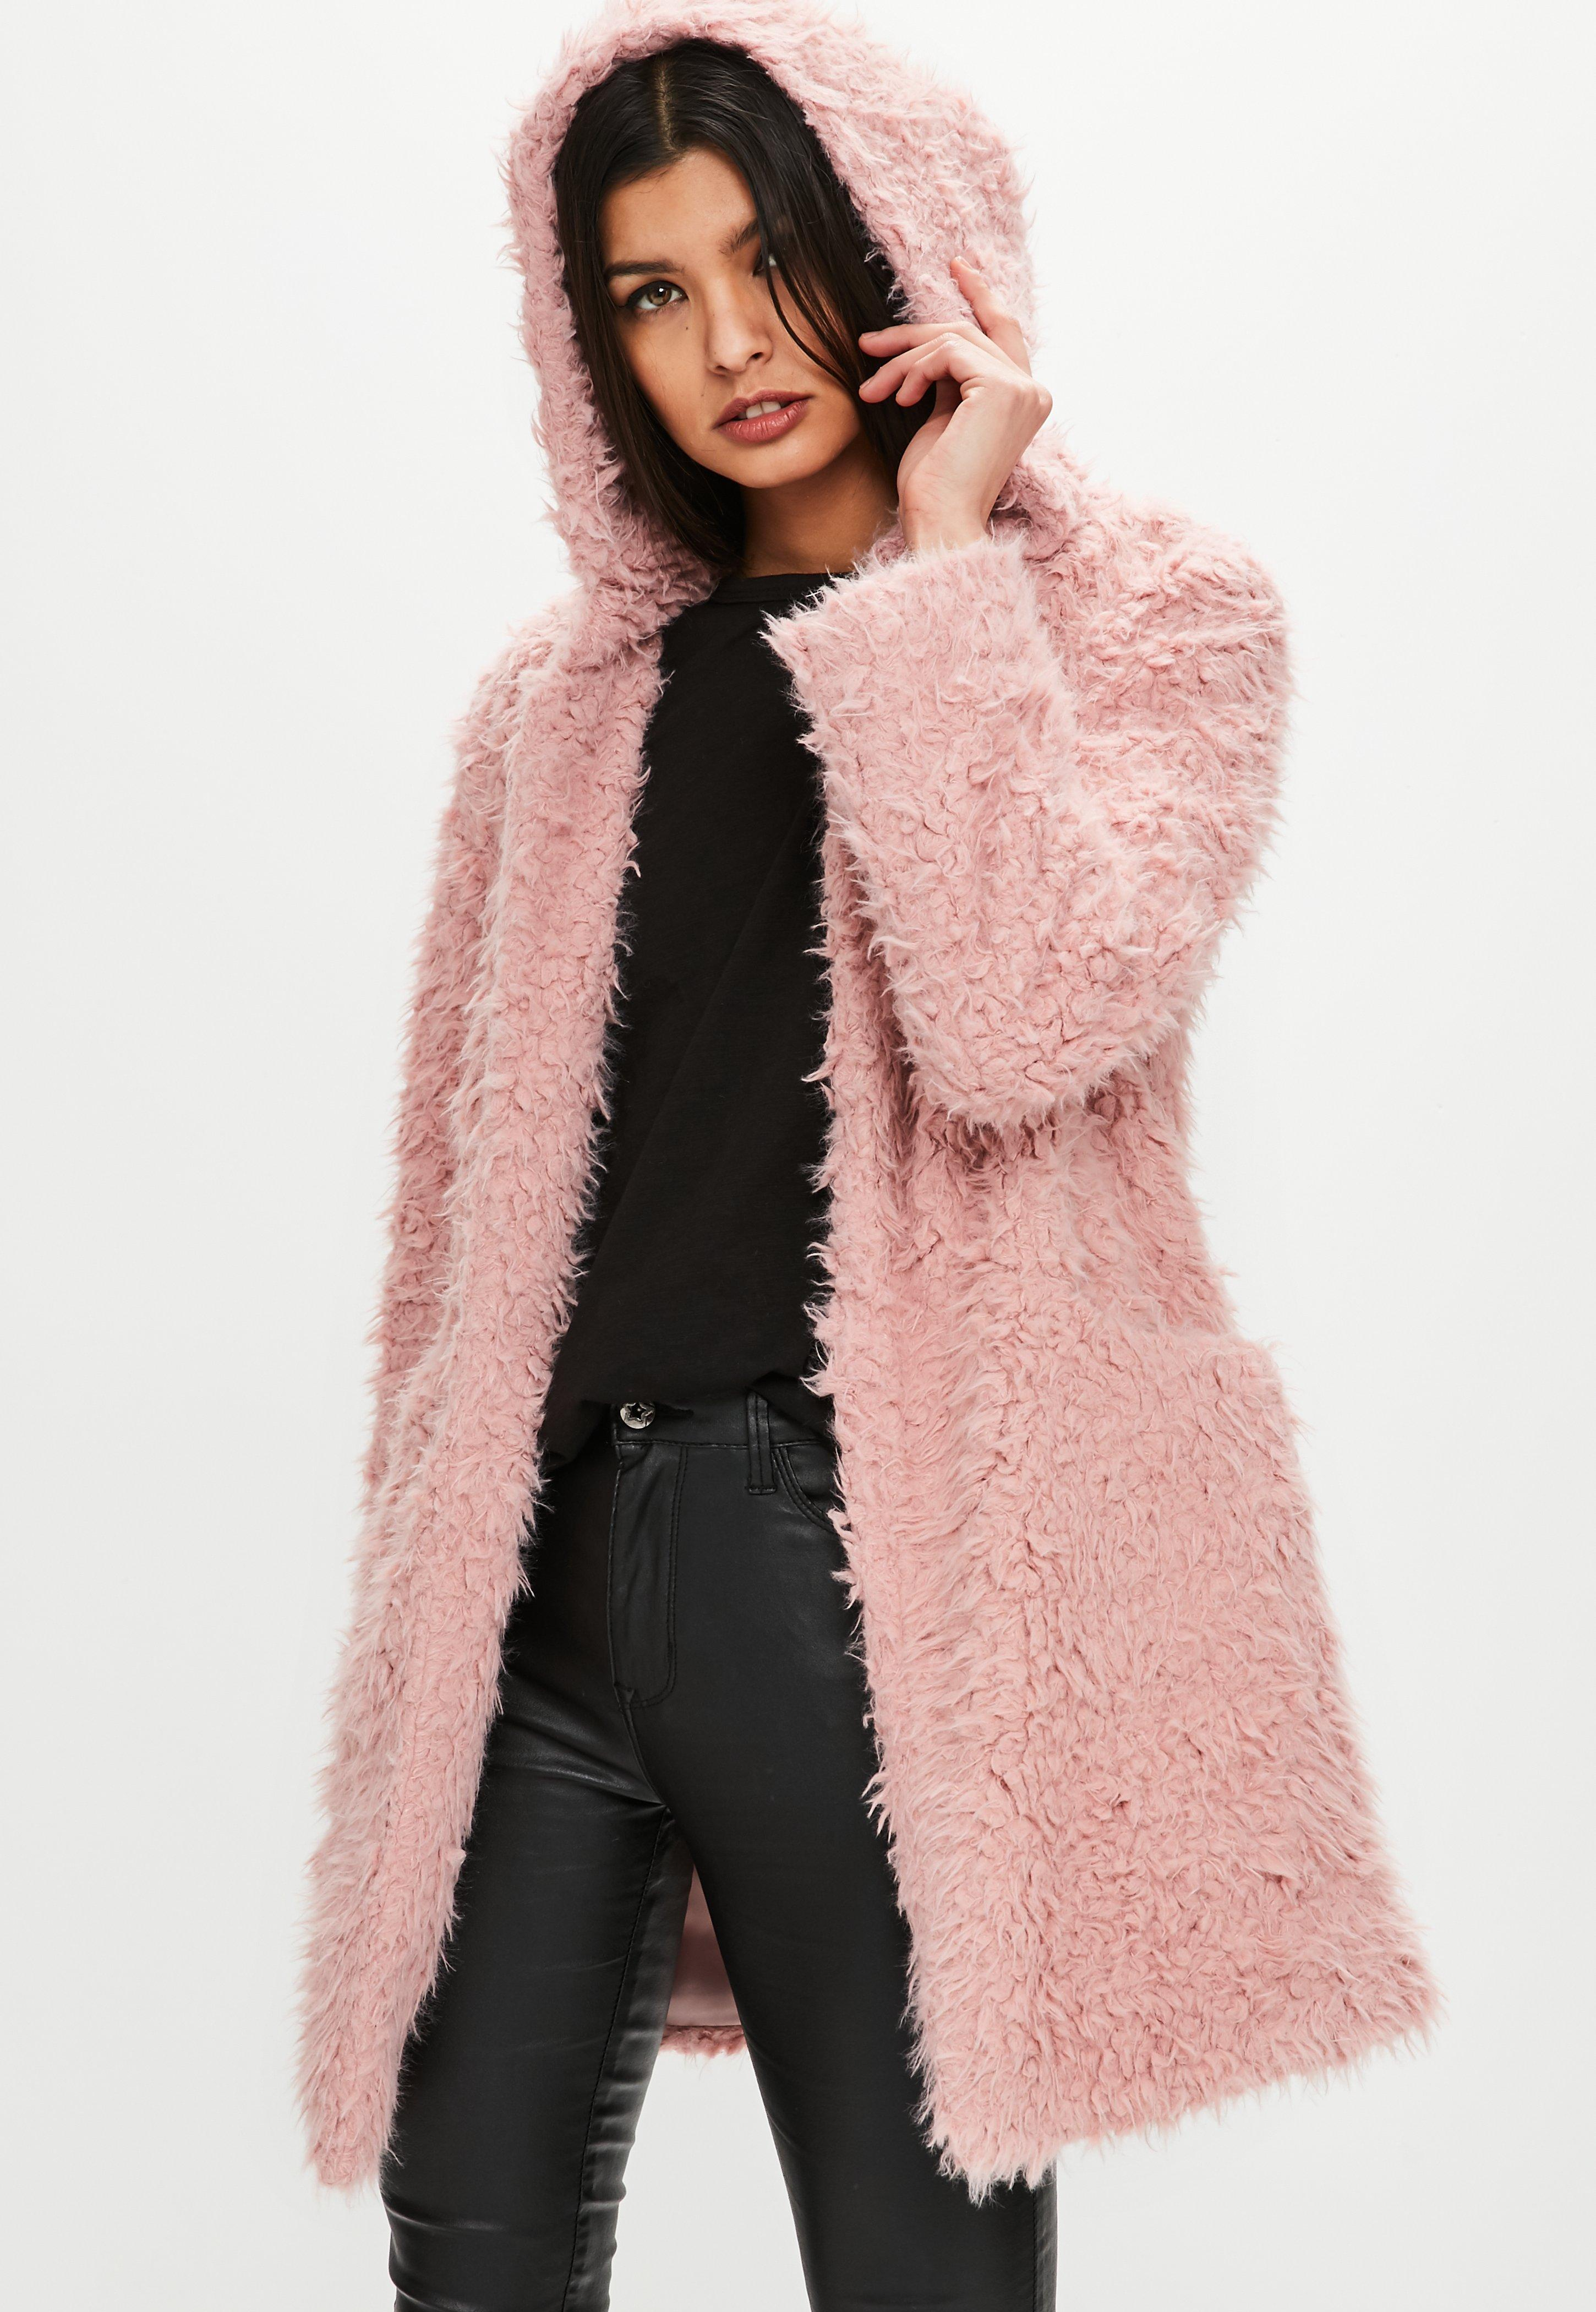 7494e5c5eed0 Missguided Pink Shaggy Longline Faux Fur Coat in Pink - Lyst